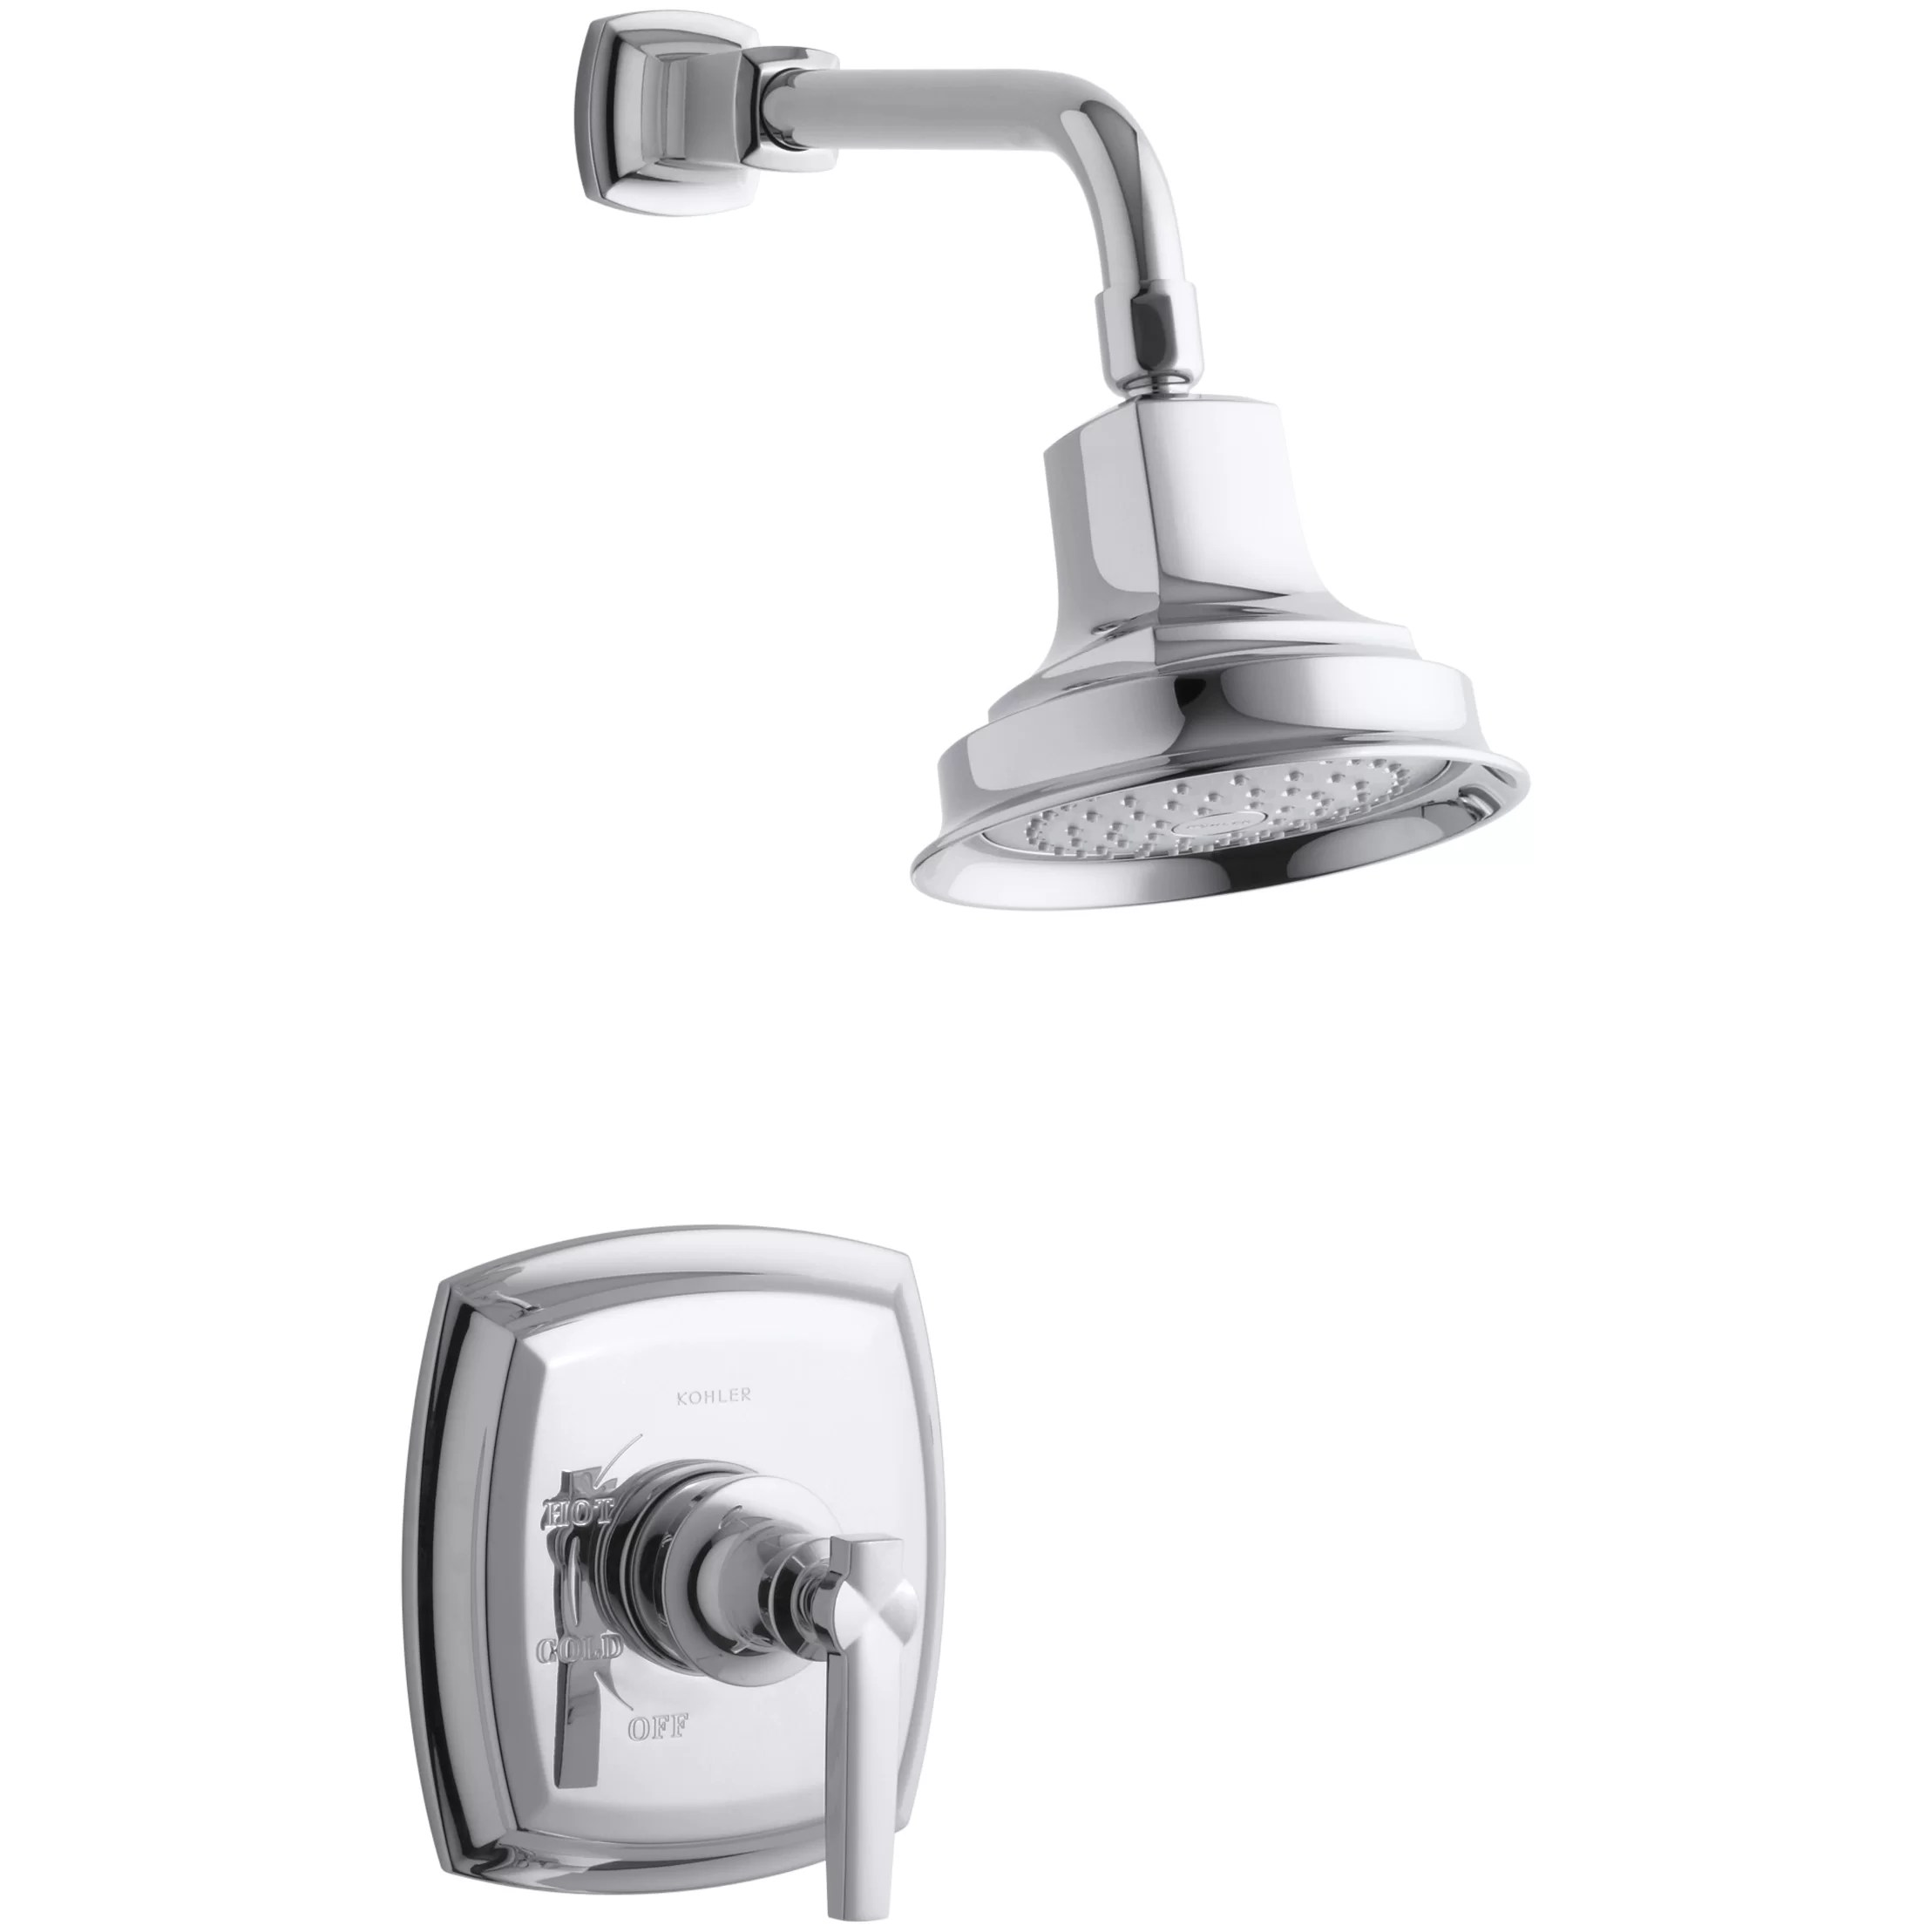 Kohler Margaux RiteTemp PressureBalancing Shower Faucet Trim with Lever Handle Valve Not